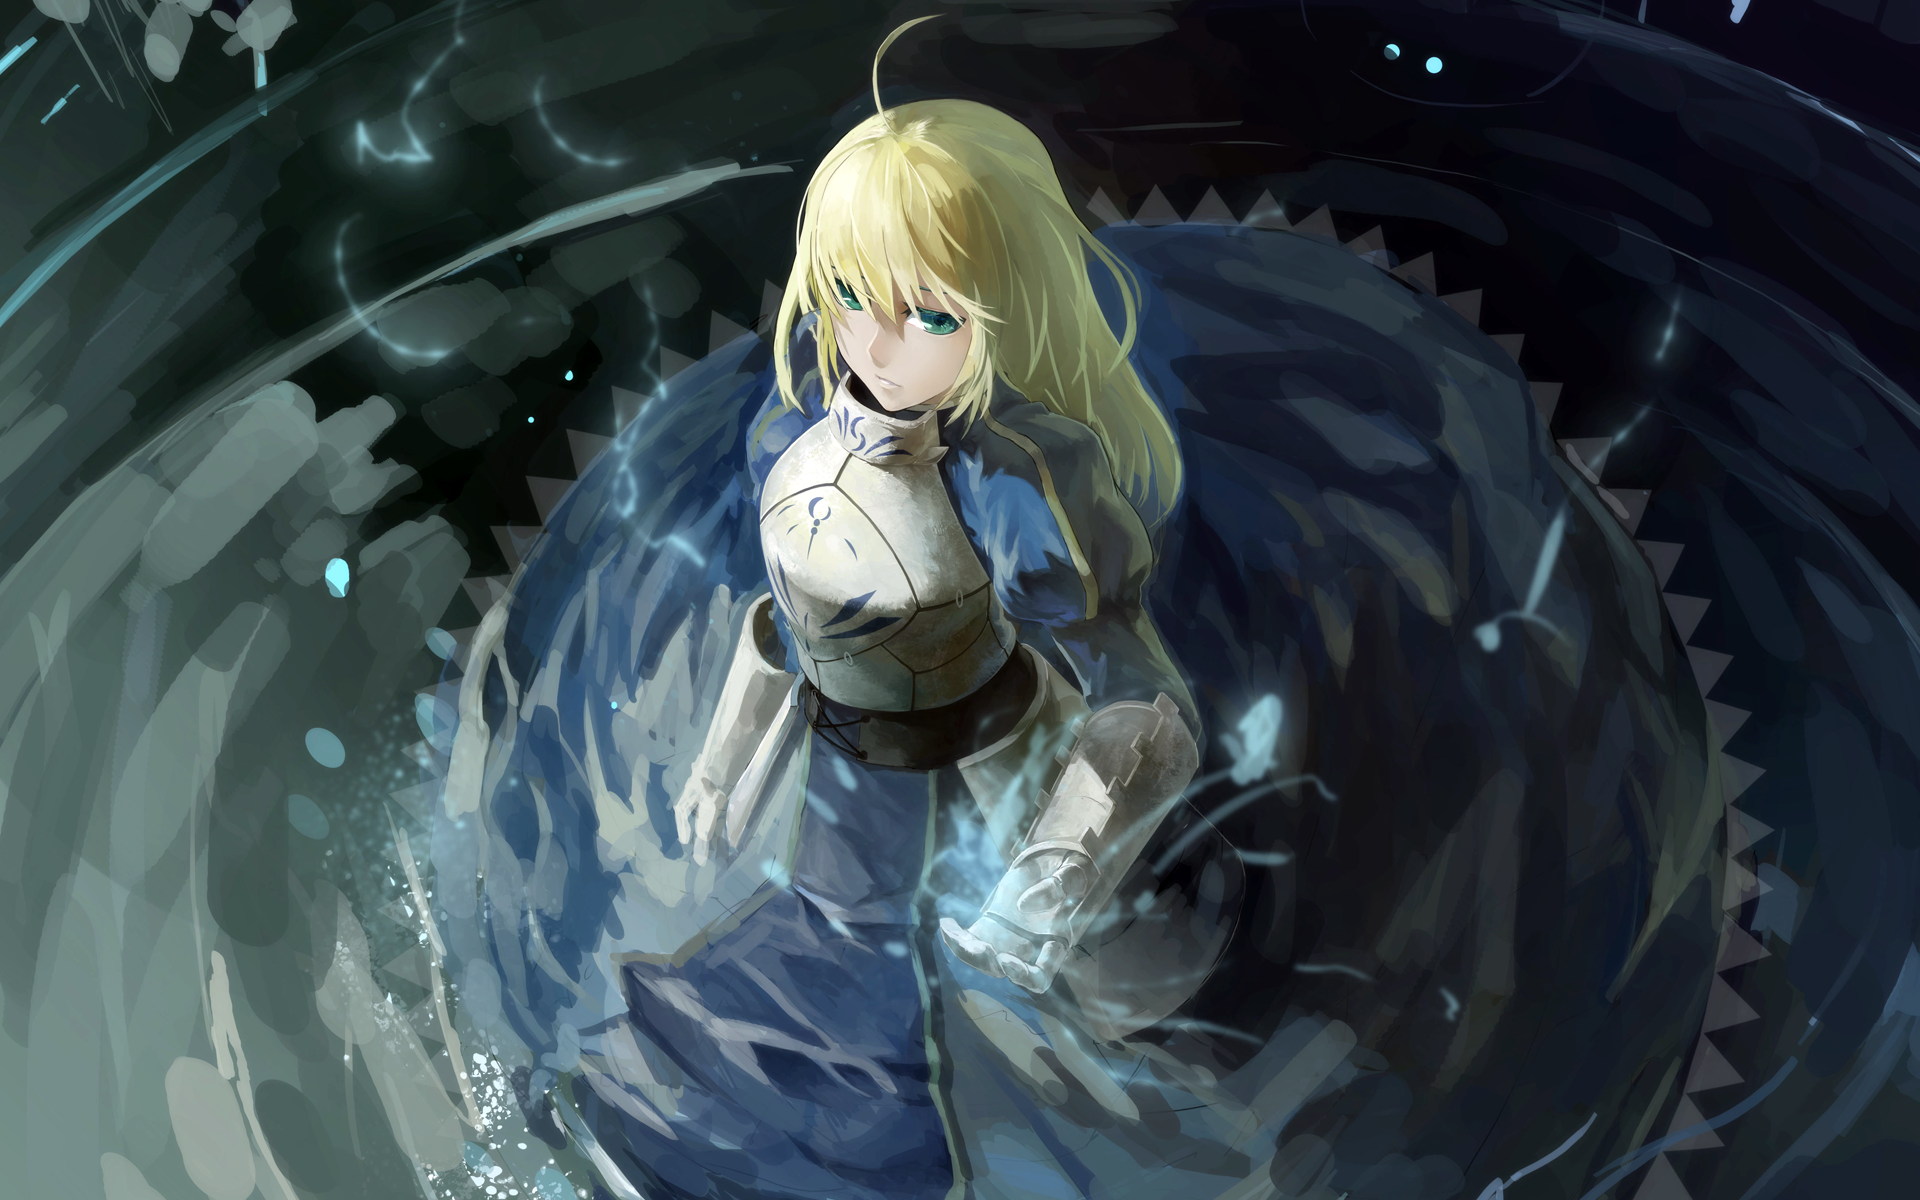 Fate Zero Saber Wallpaper Fate Stay Night Fate Zero